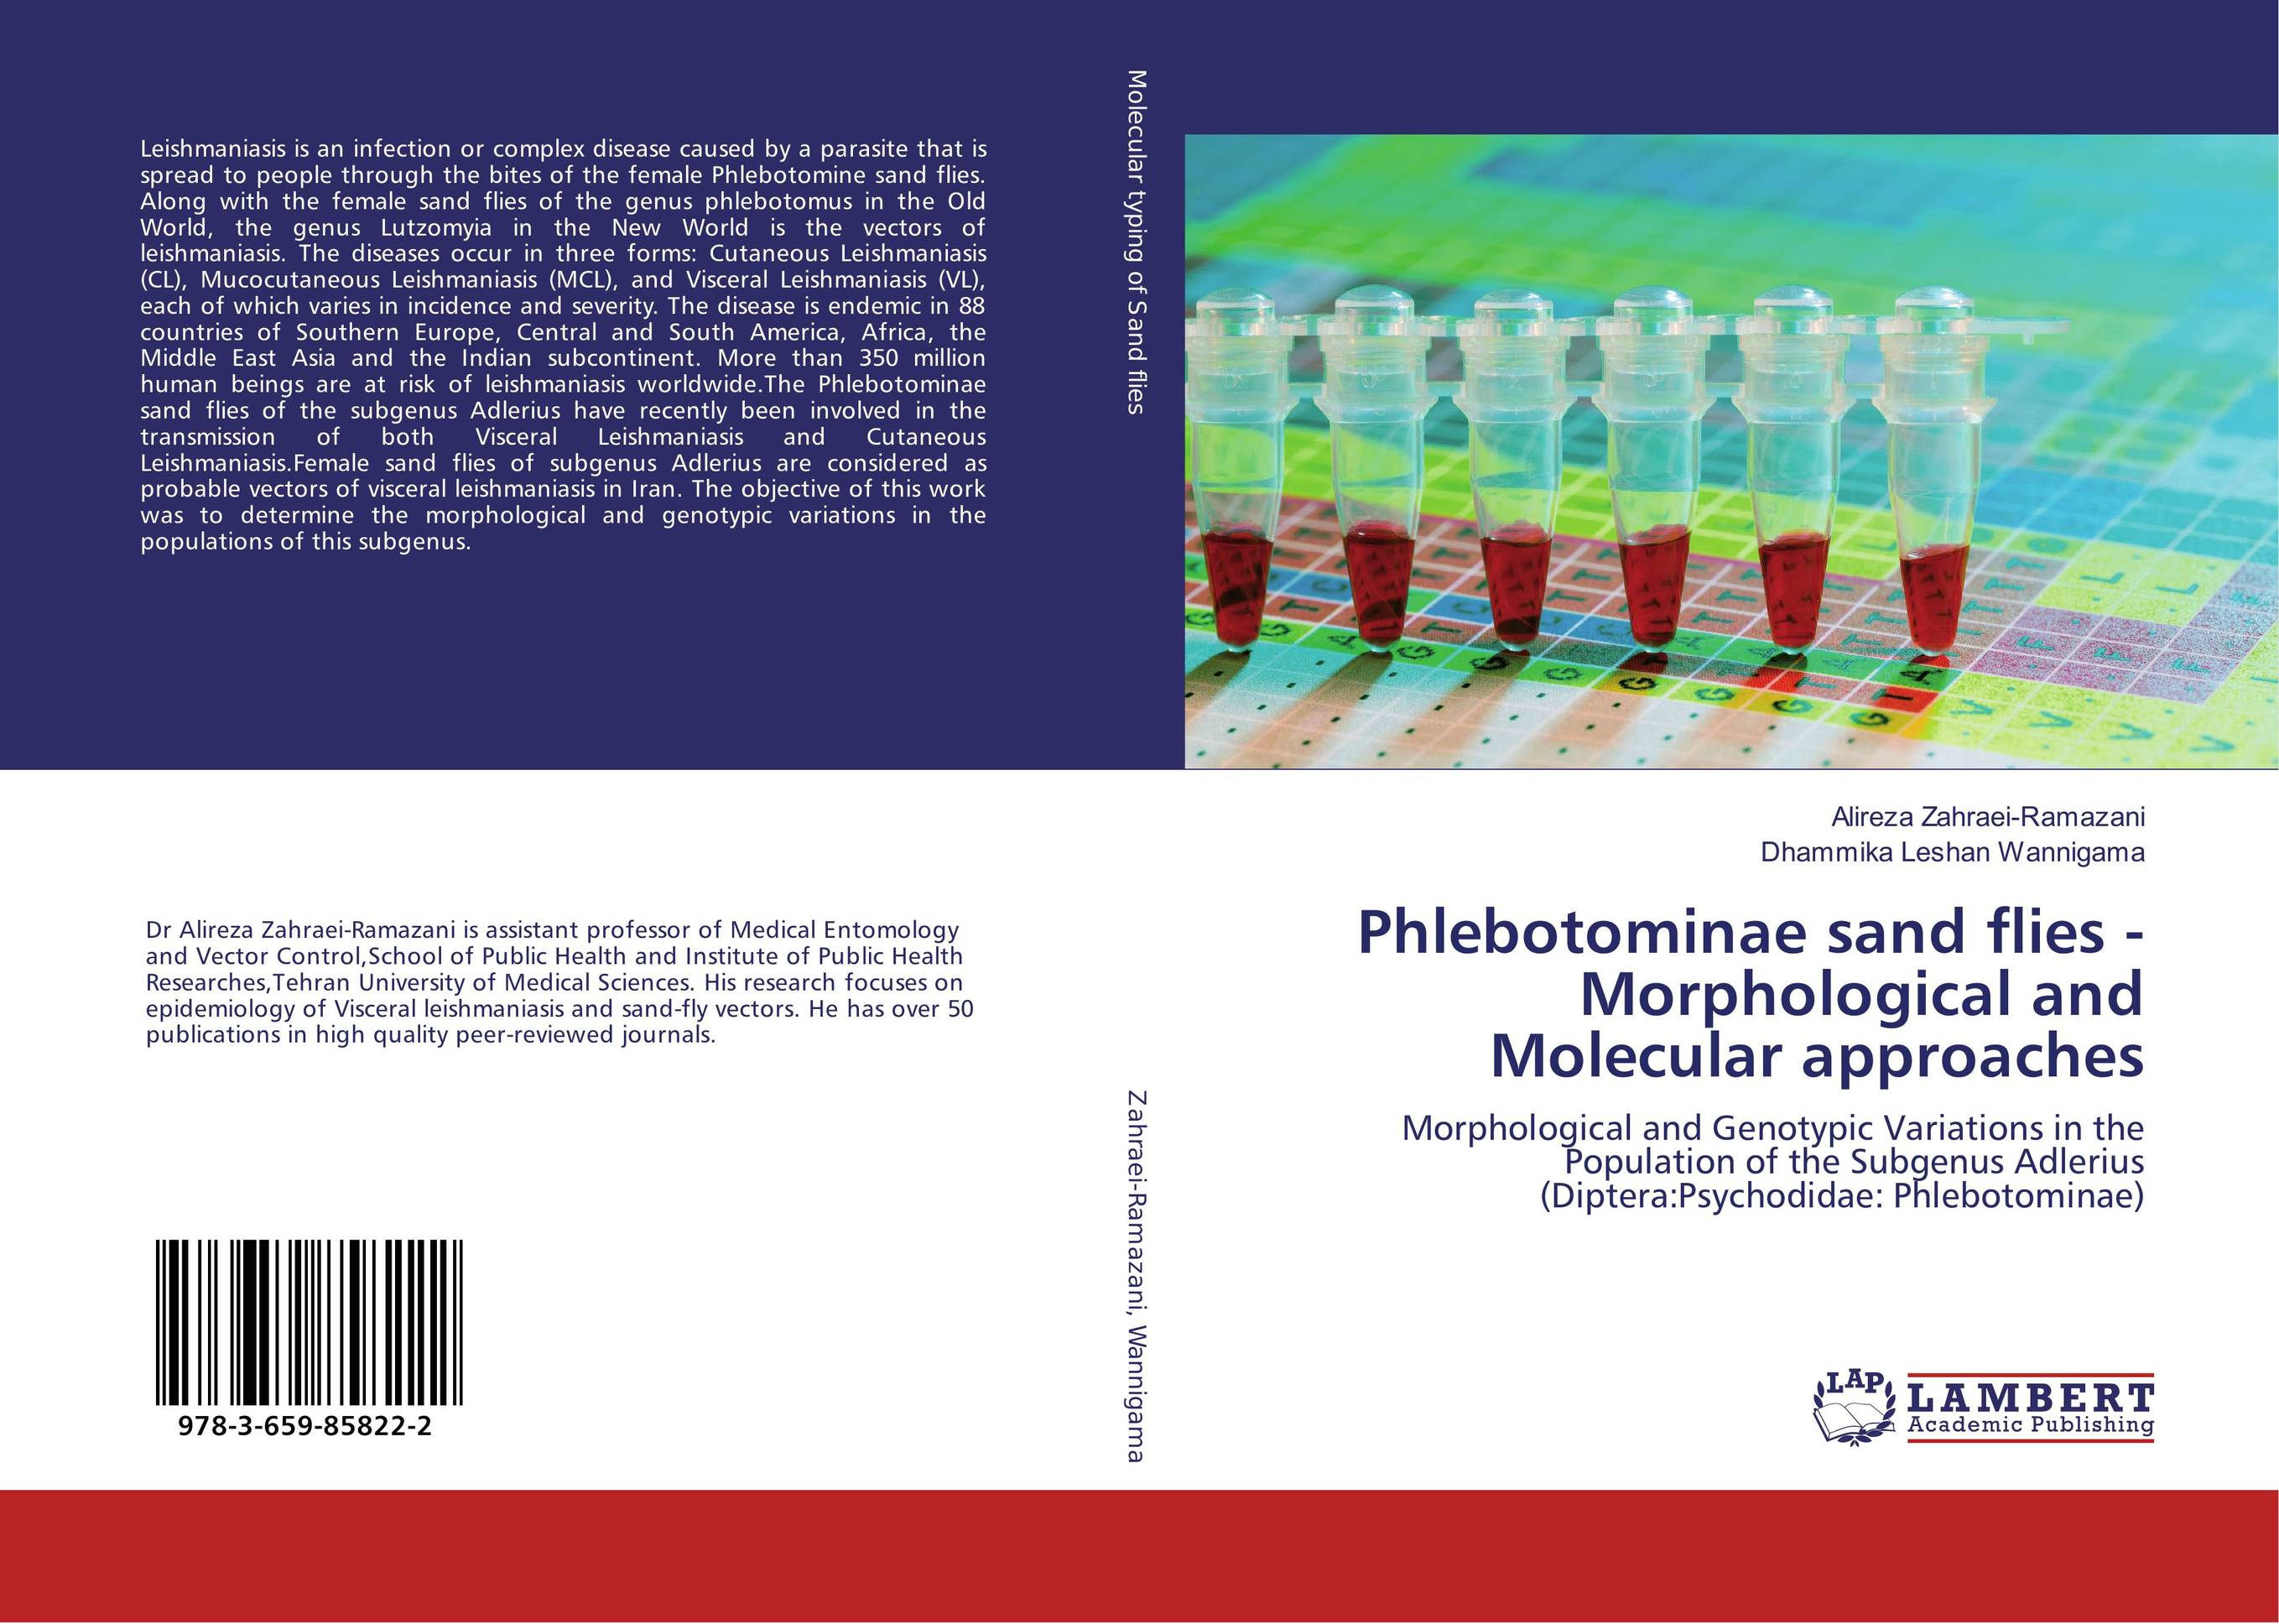 Phlebotominae sand flies -Morphological and Molecular approaches biology of visceral leishmaniasis